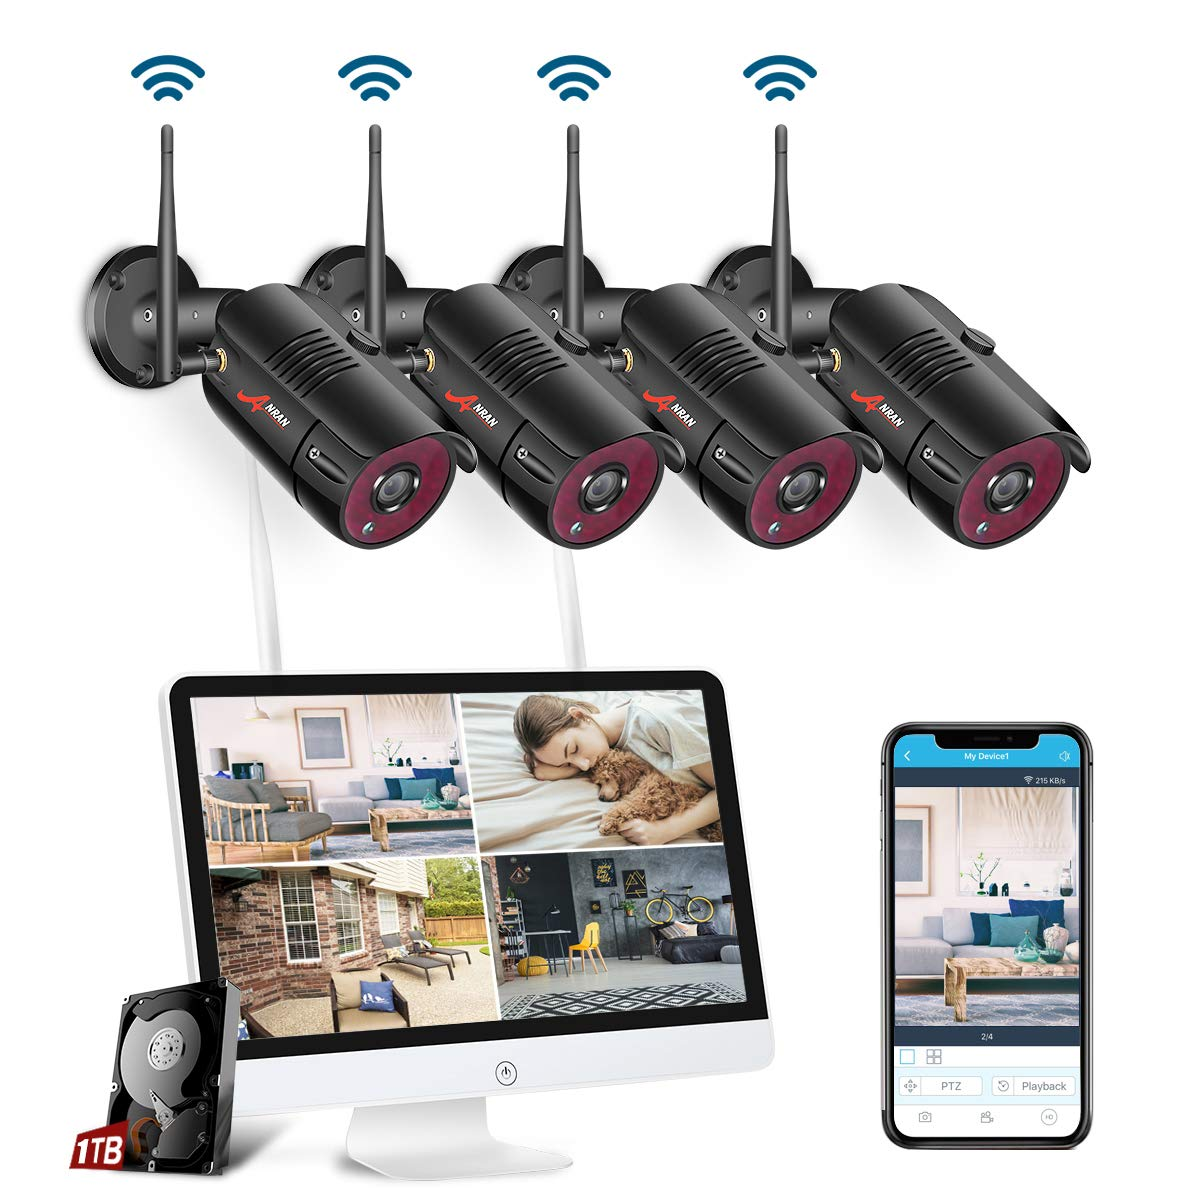 【All-in-One】 ANRAN 1080P Wireless Security Camera System with 15.6 Inch LCD Monitor 1TB HDD, 4CH Waterproof Indoor/Outdoor Wireless Surveillance Camera with Night Visio, Motion Detection,Plug&Play